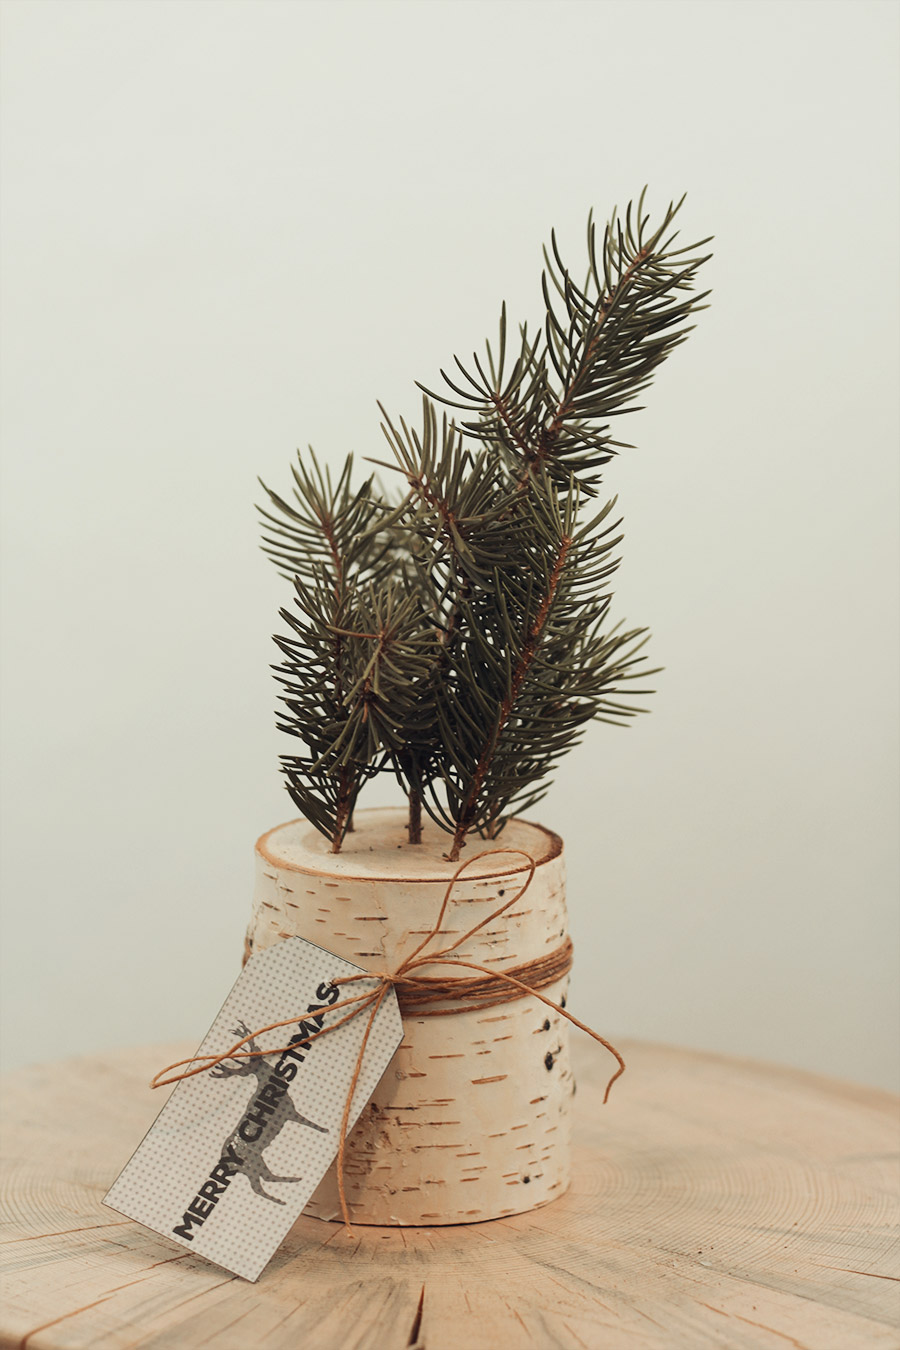 Pine Branches For Decoration Diy Holiday Gifts Using Logs Stumps Succulents